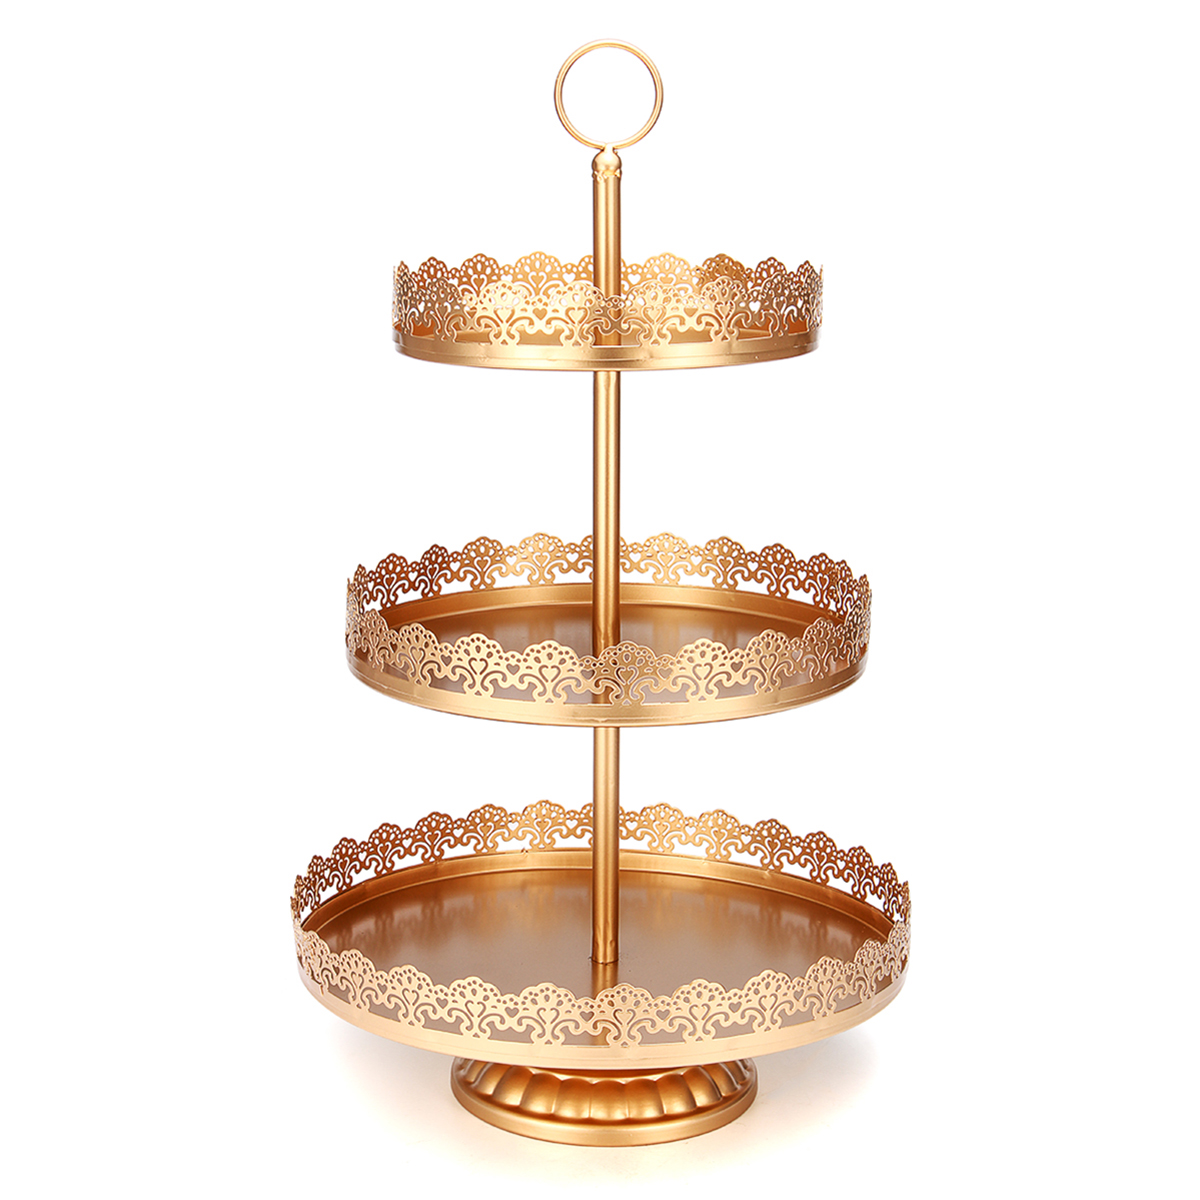 3-Tier Cupcake Stand Metal Cake Dessert Wedding Event Party Display ...